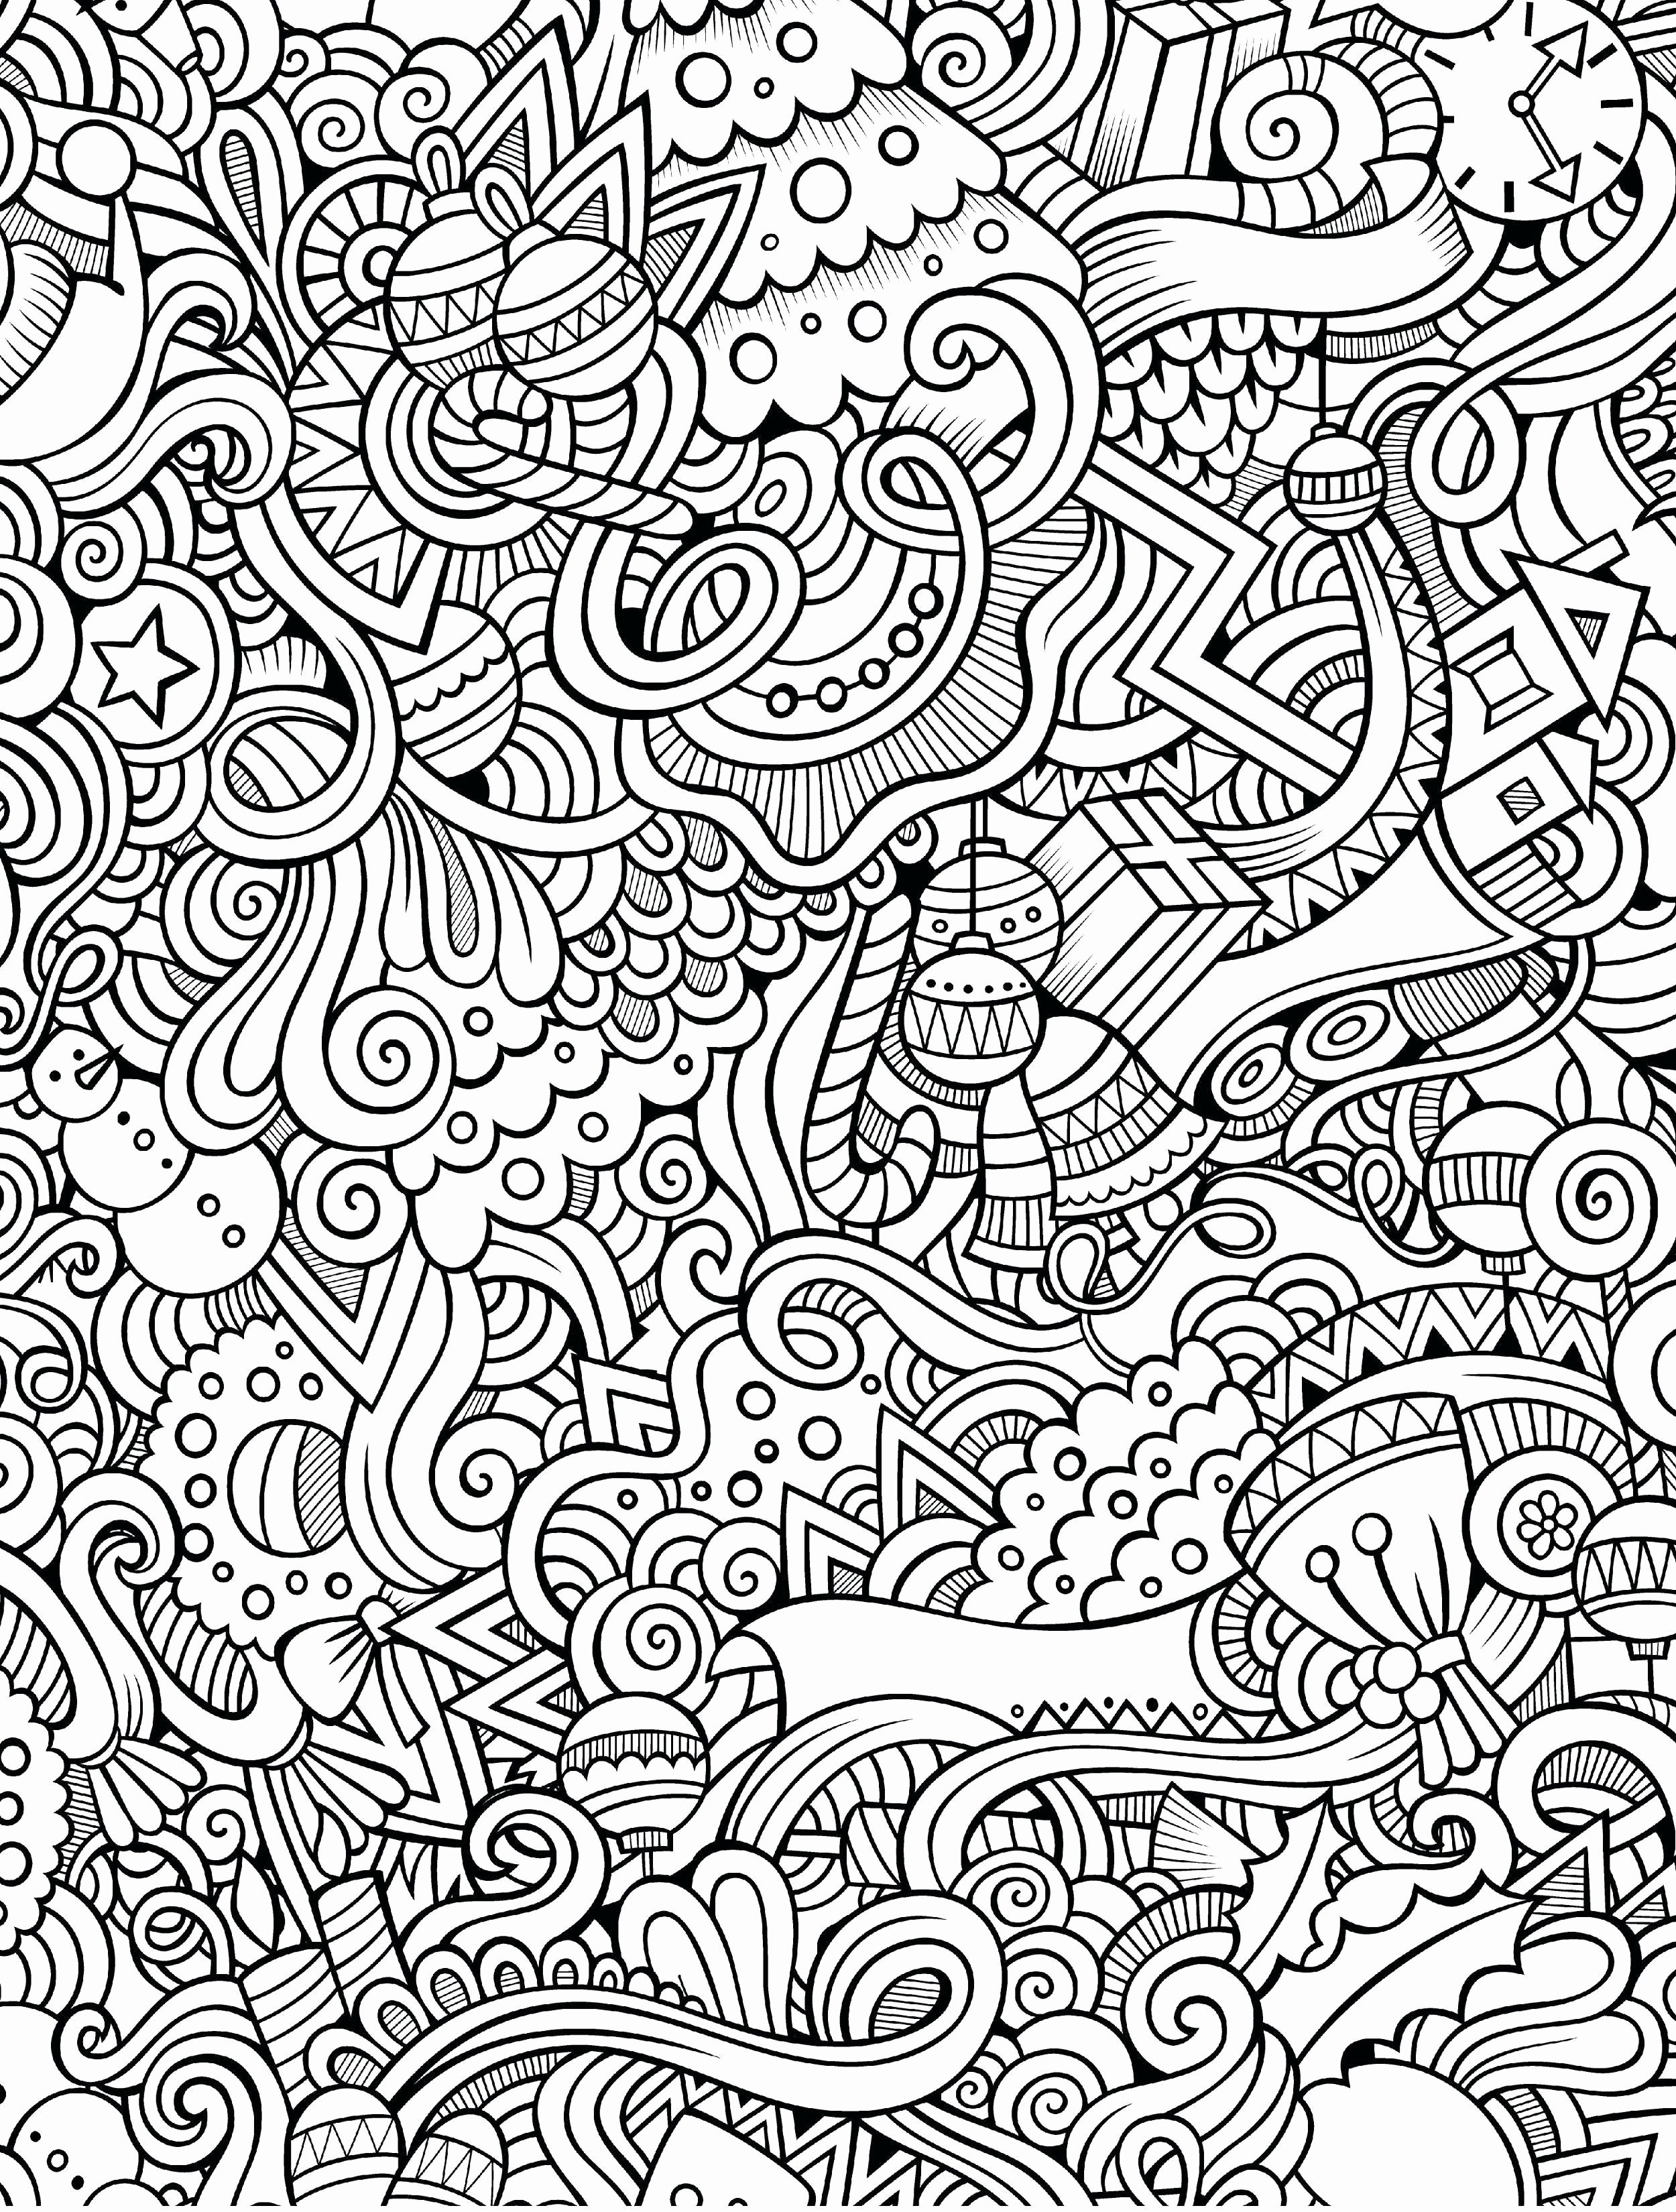 Christmas Colouring Pages Hard With Coloring Sheets New Difficult